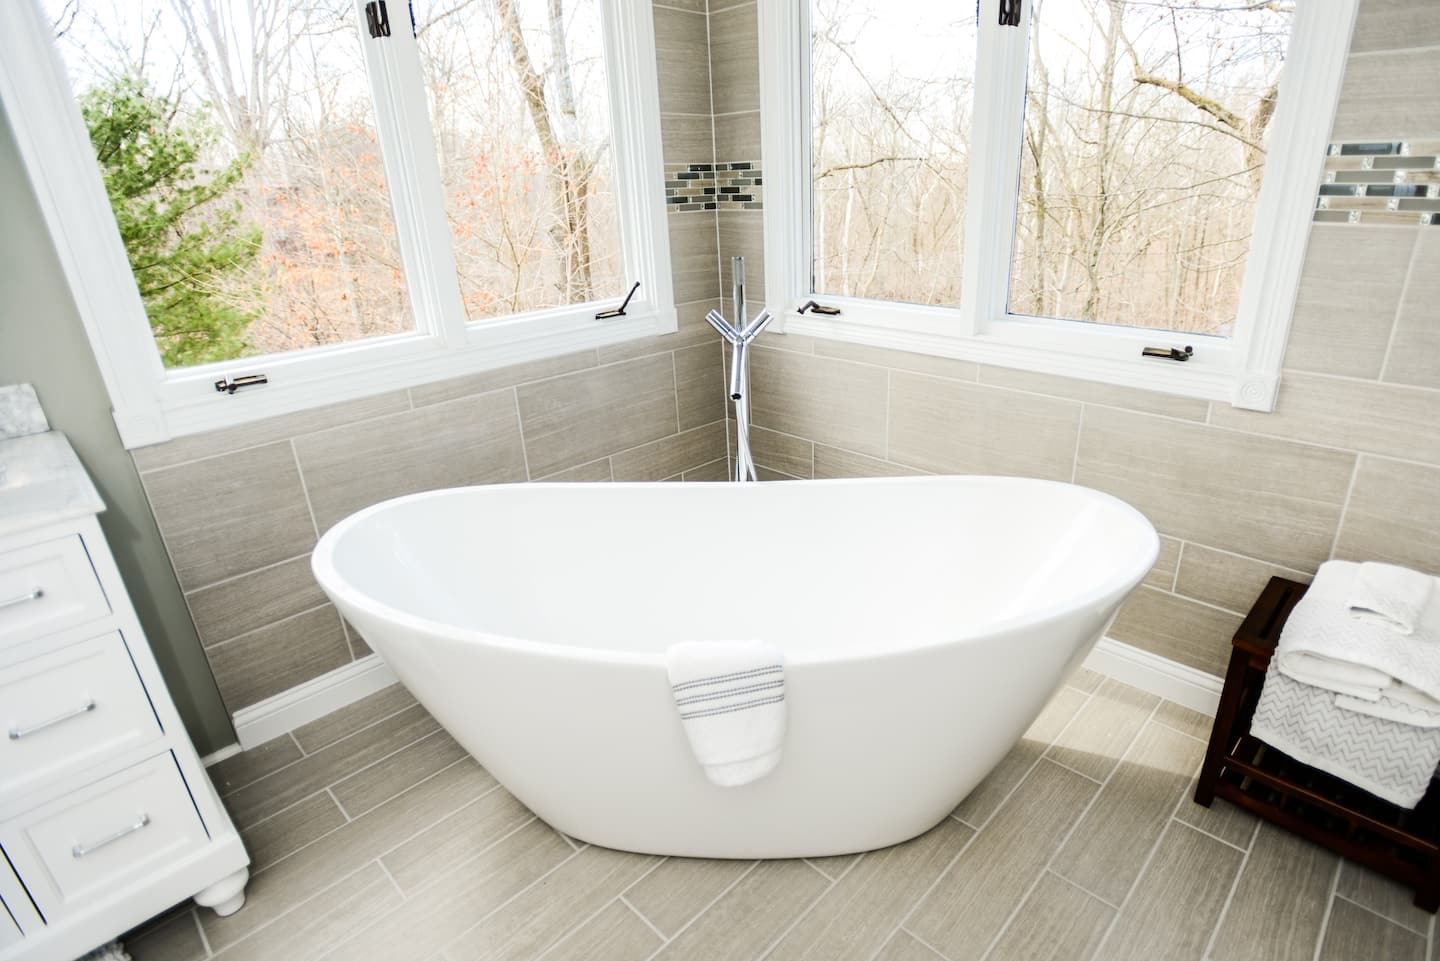 bathtubs showers angie s list large soaking bathtub shaped like basin inside bathroom